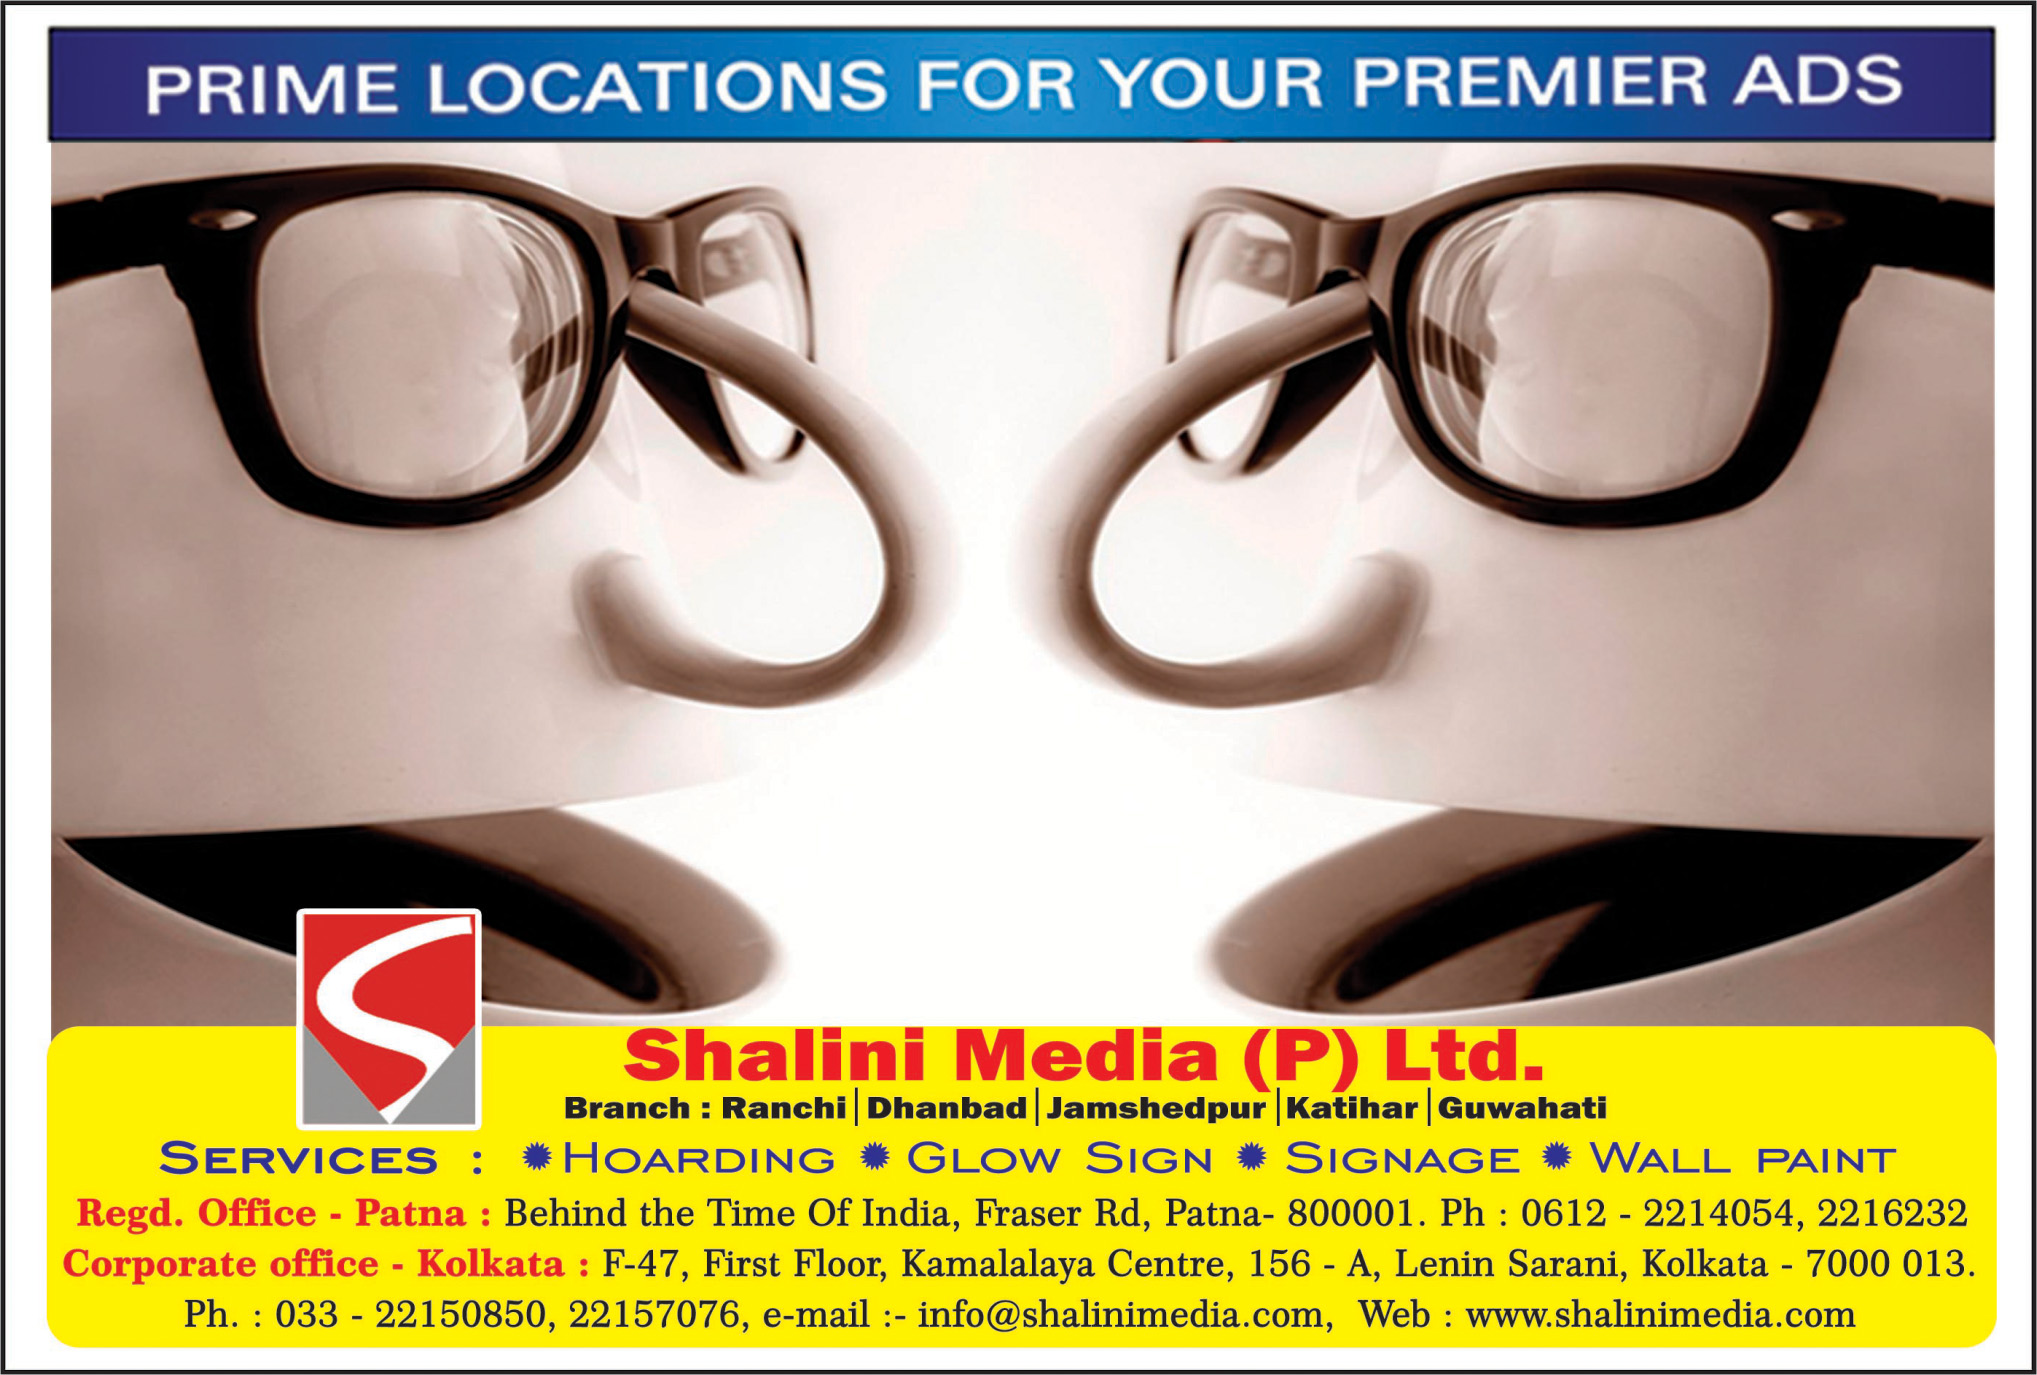 Advertising Indoor and Outdoor, SHALINI MEDIA (P) LTD, Kolkata,  Yellow Pages, Kolkata, West Bengal